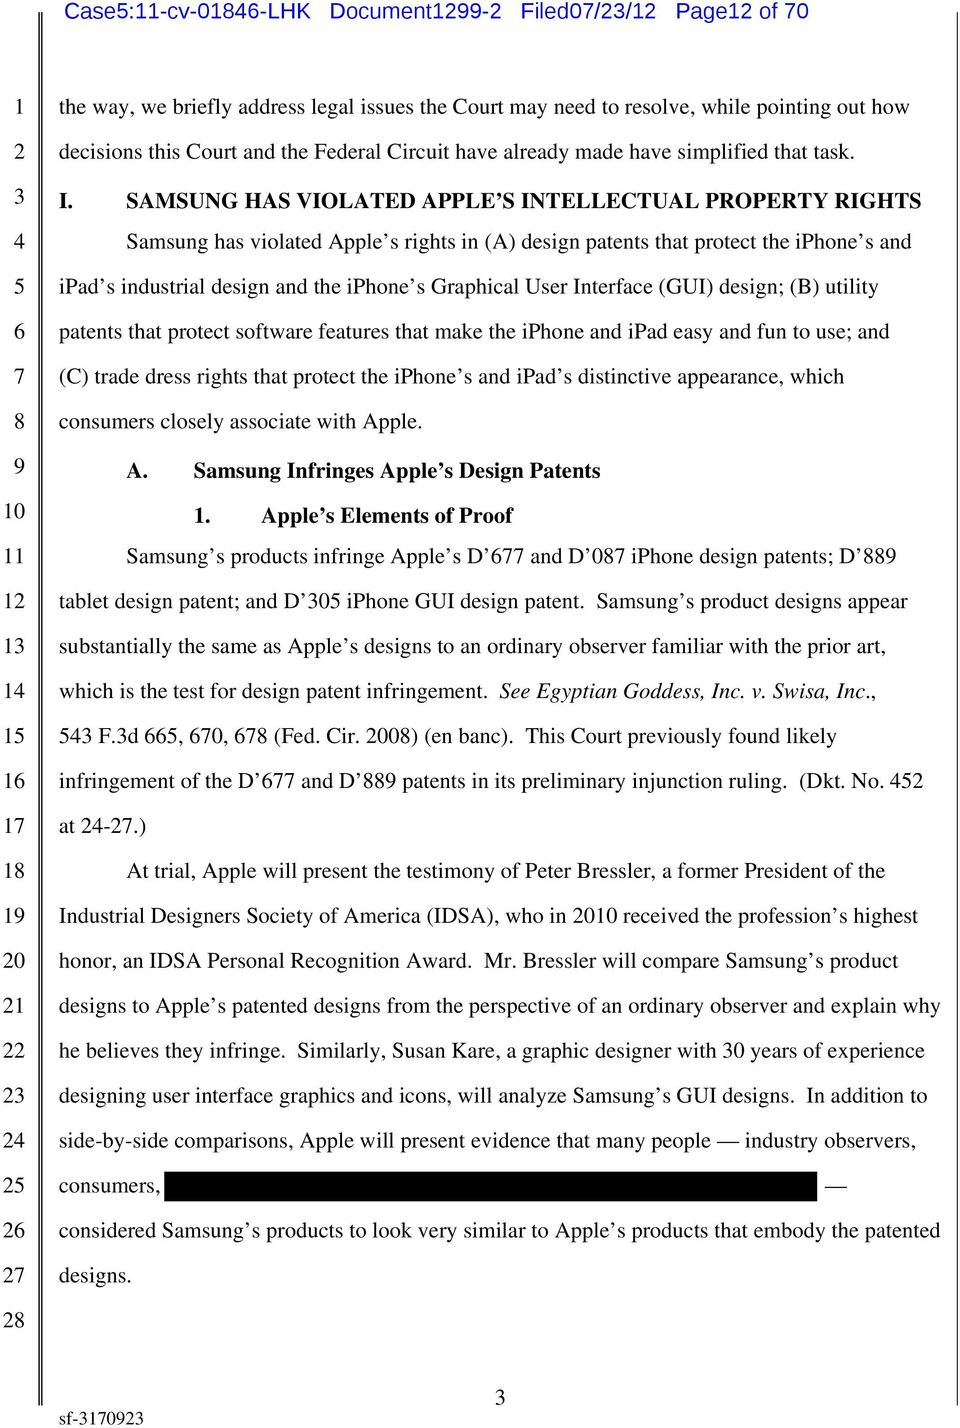 SAMSUNG HAS VIOLATED APPLE S INTELLECTUAL PROPERTY RIGHTS Samsung has violated Apple s rights in (A) design patents that protect the iphone s and ipad s industrial design and the iphone s Graphical